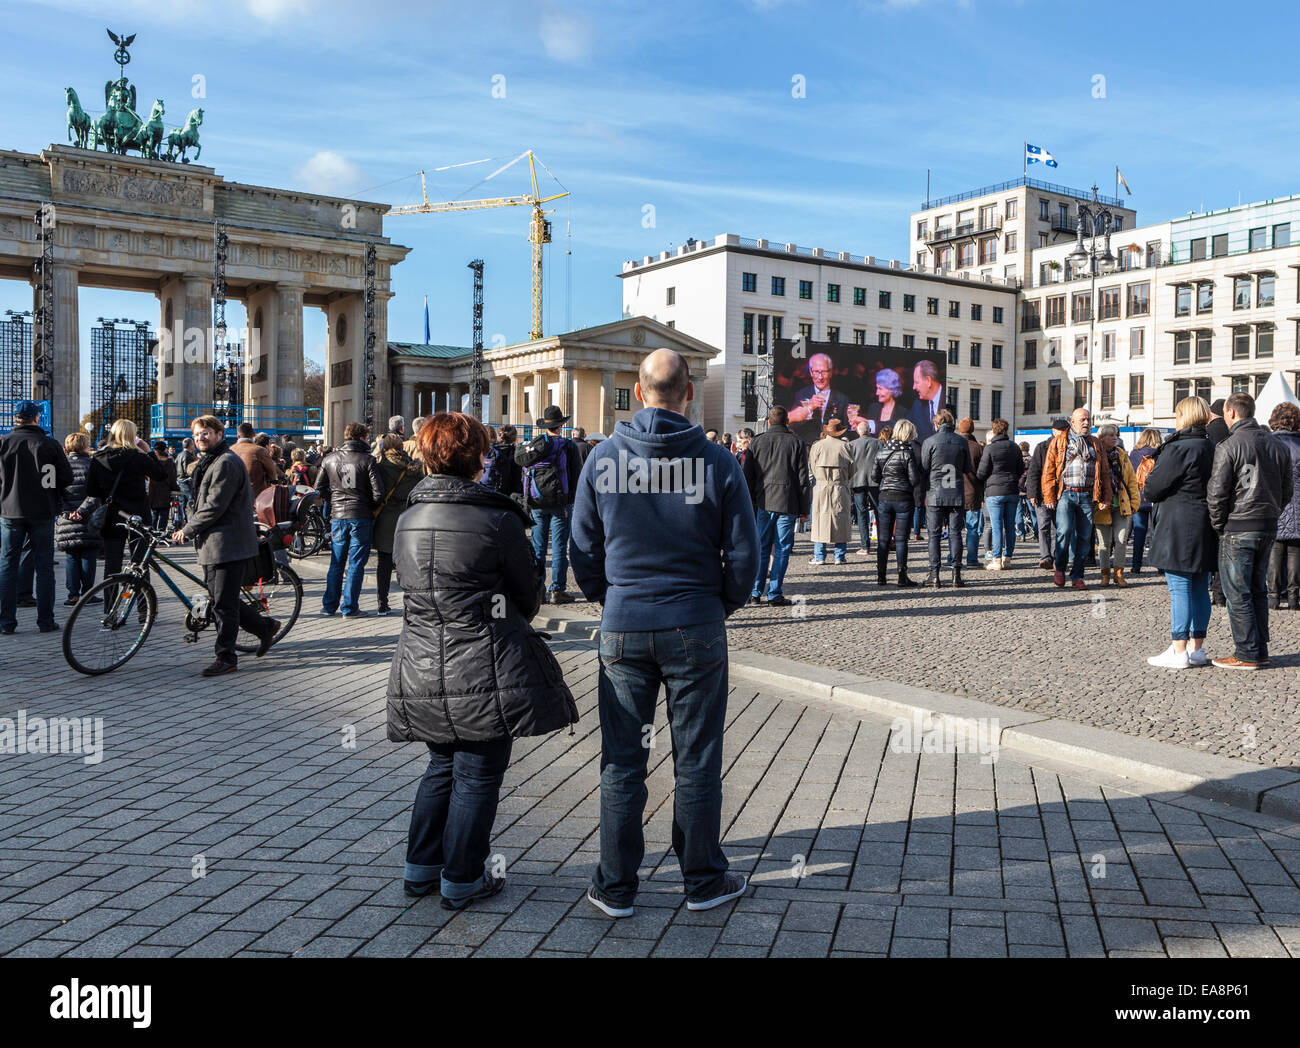 Berlin, Germany, 8th November, 2014. Berlin is celebrating 25 years since the fall of the wall and the peaceful Stock Photo